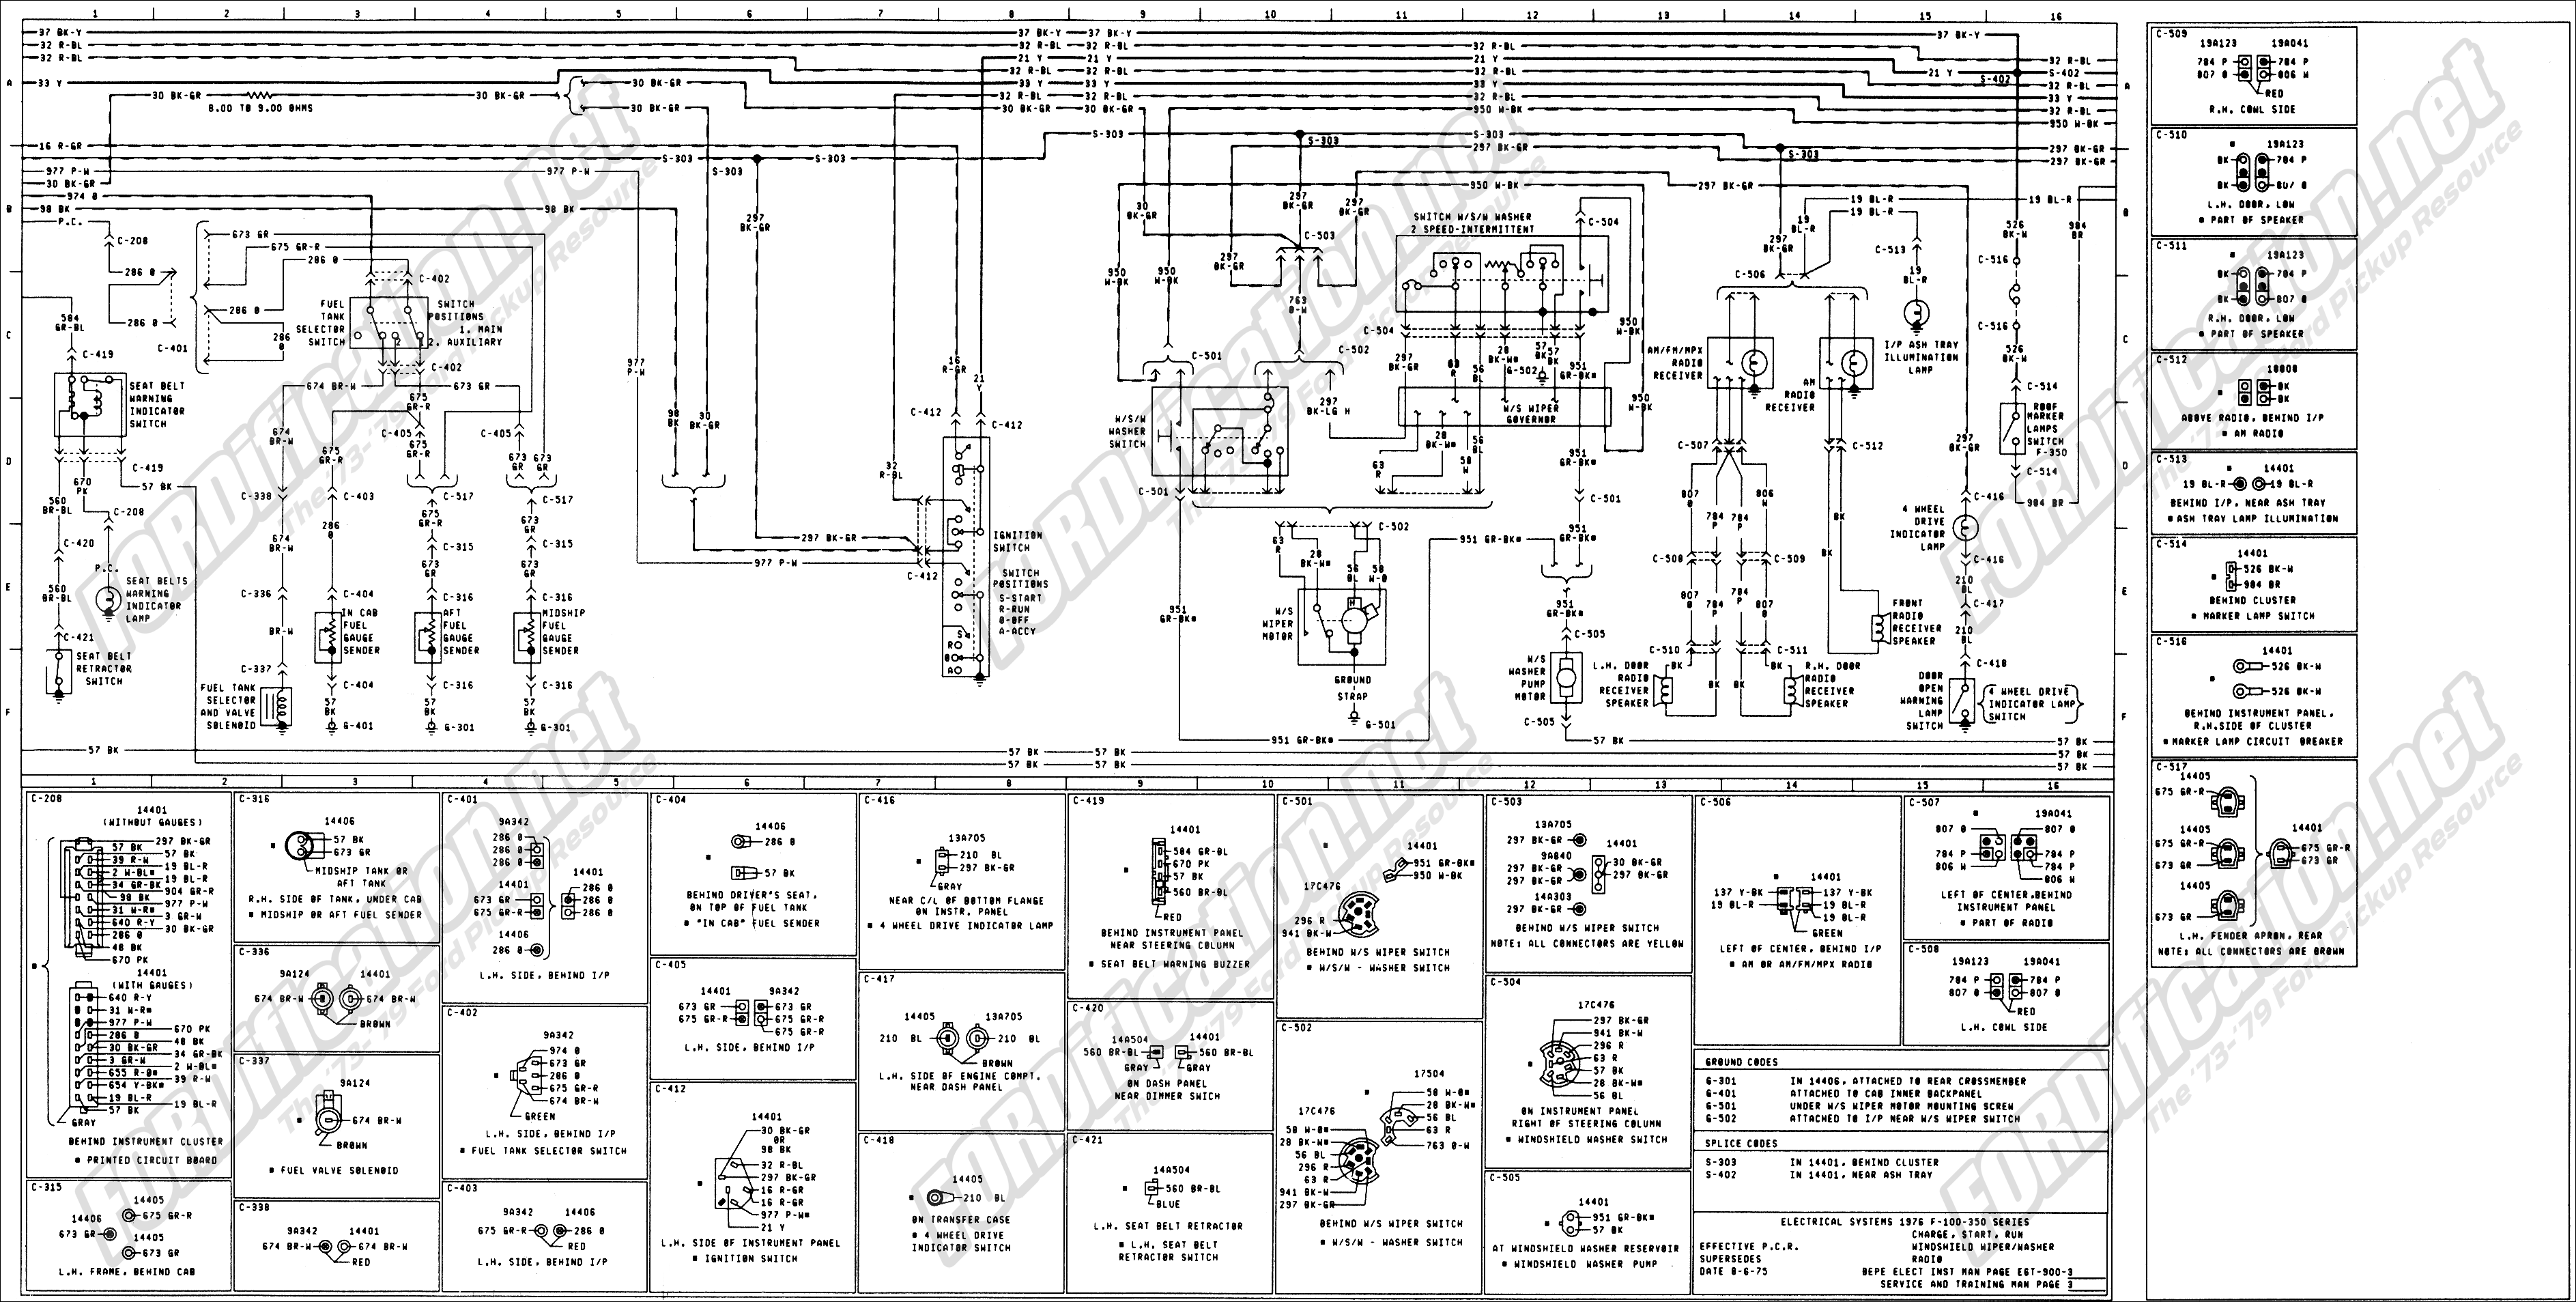 wiring_76master_3of9 1973 1979 ford truck wiring diagrams & schematics fordification net 73 ford f250 wiring diagram at nearapp.co